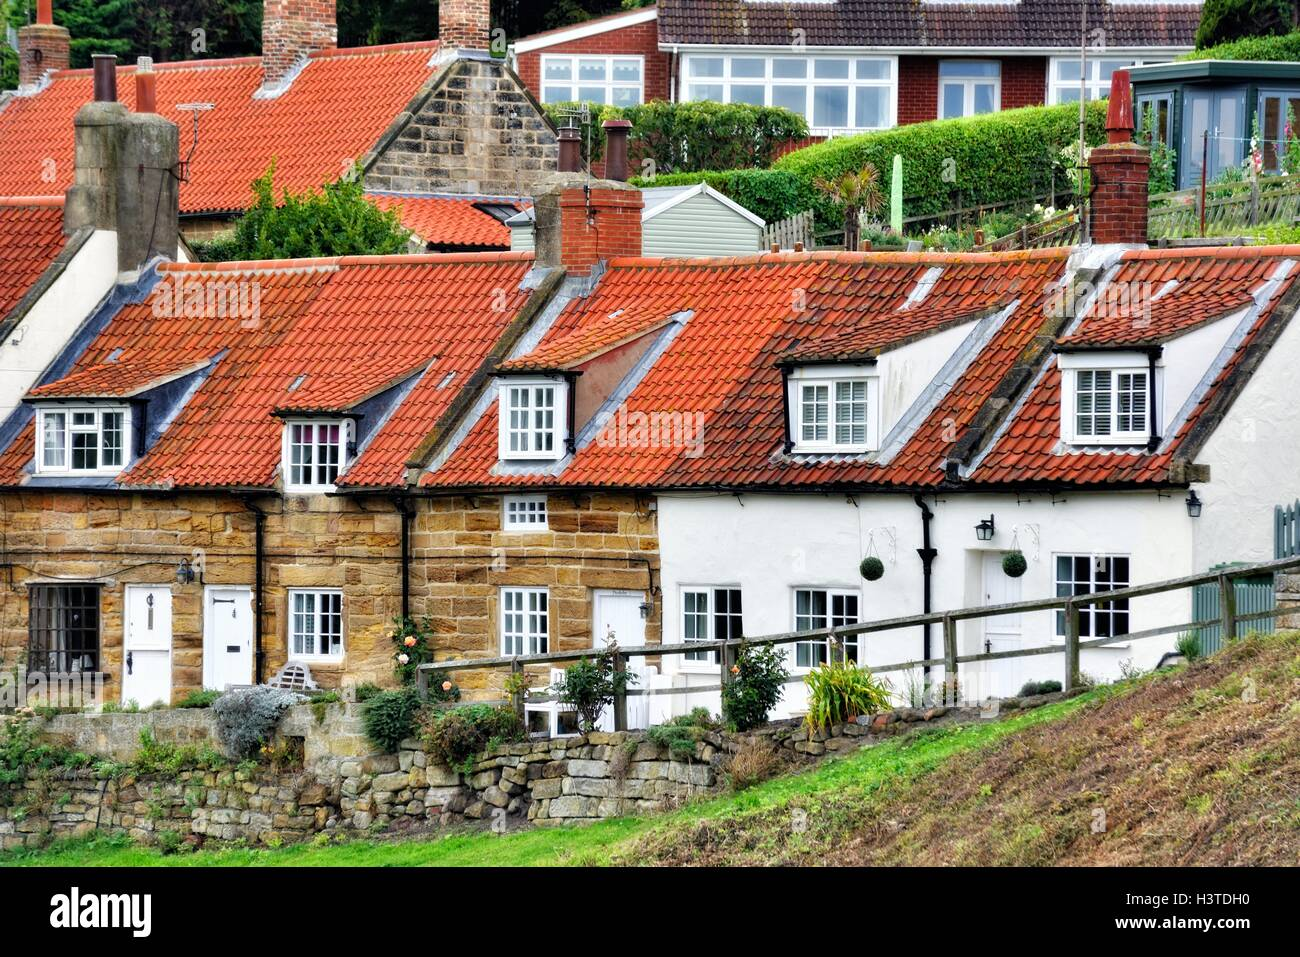 Swell Holiday Cottages In Sandsend Whitby North Yorkshire England Home Interior And Landscaping Oversignezvosmurscom